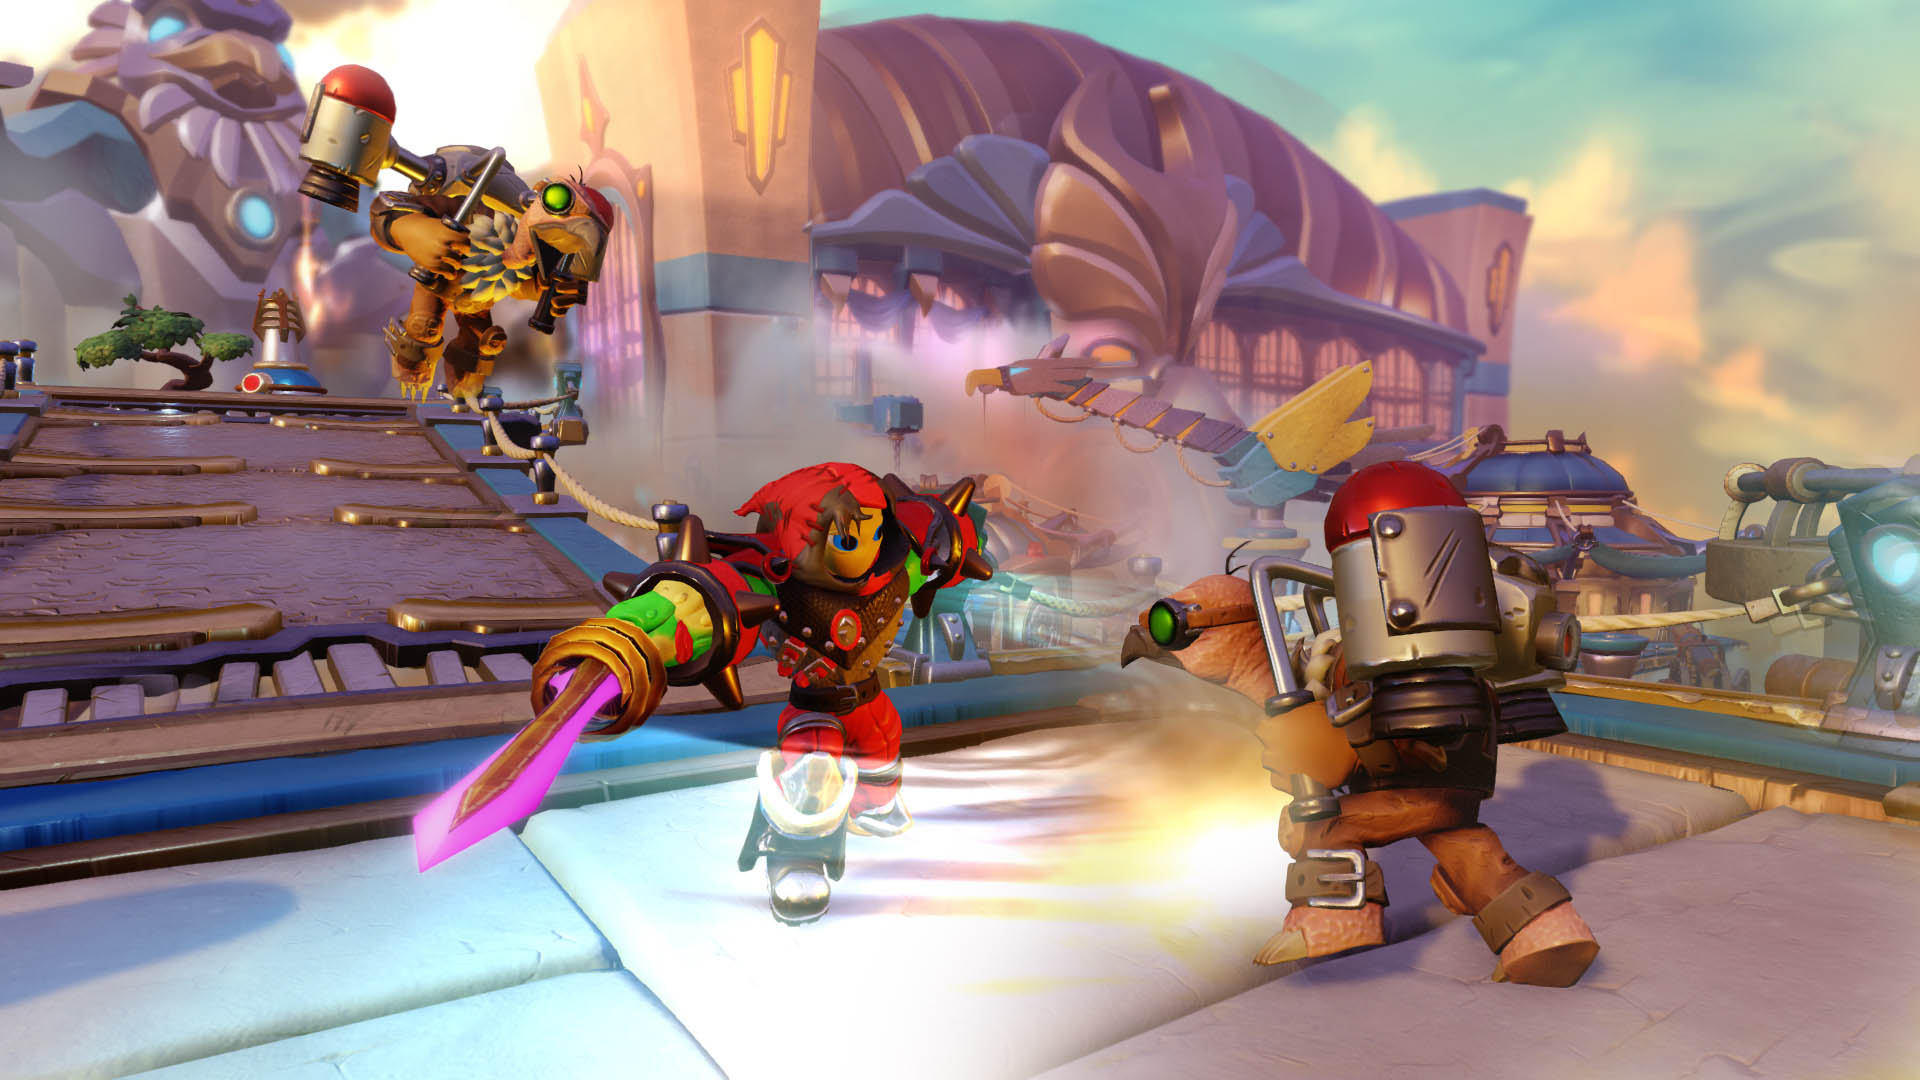 Skylanders_Imaginators_Create_Your_Own_Skylander_4.0